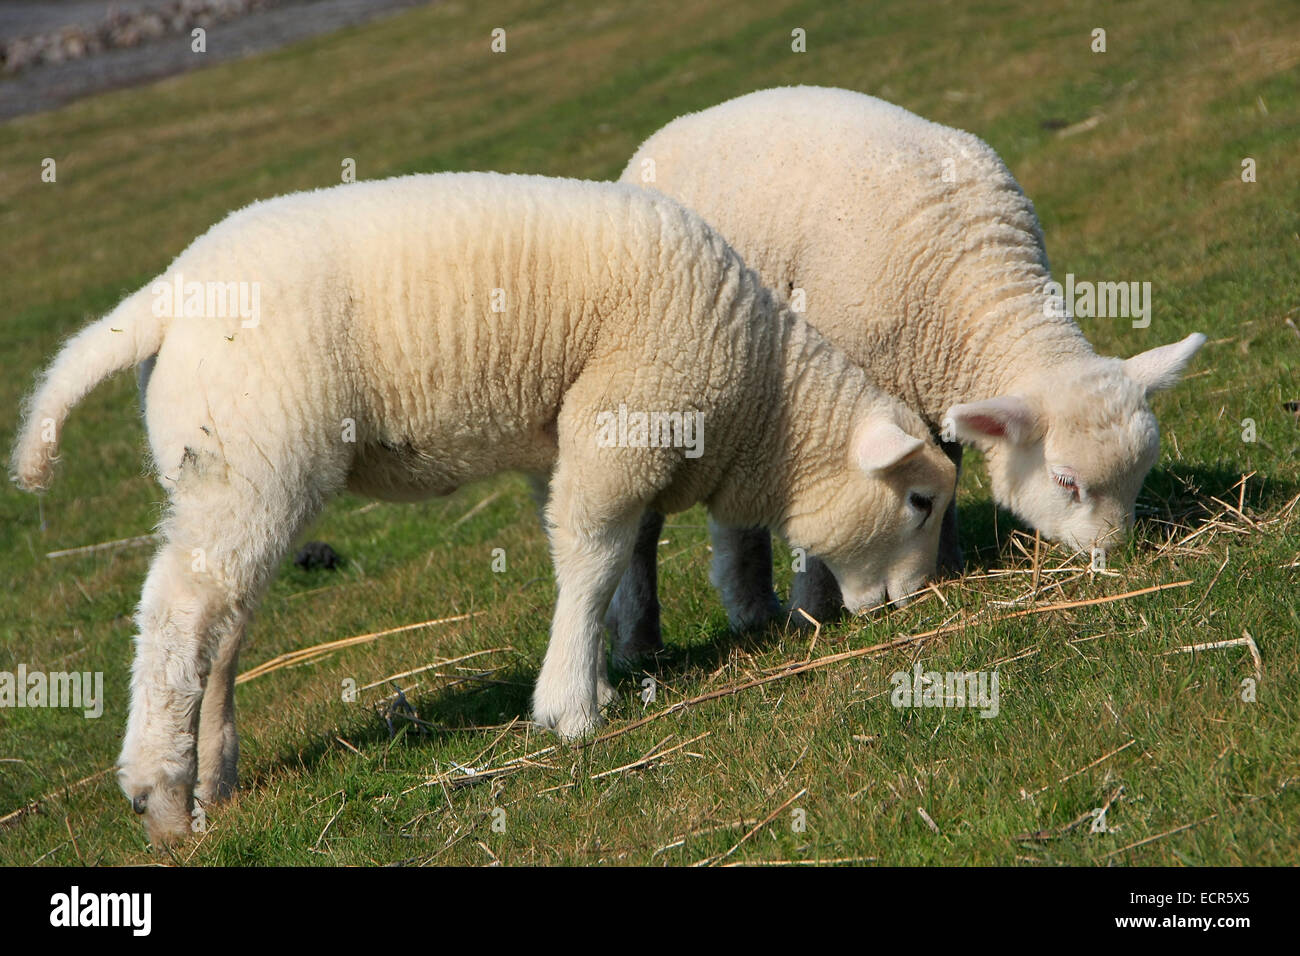 Tiefen Stock Photos & Tiefen Stock Images - Alamy